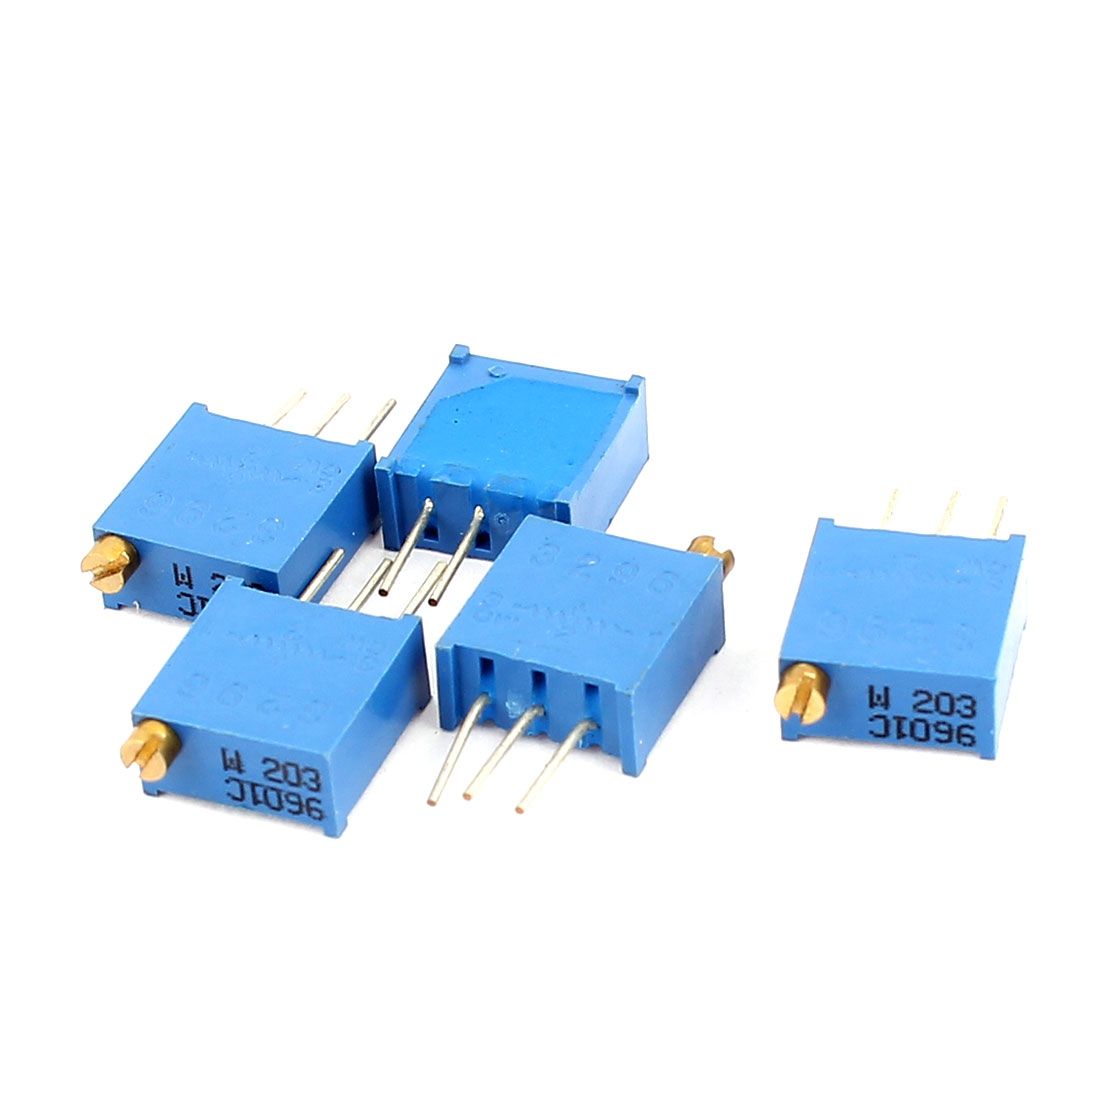 5Pcs 3296W-203 20K Ohm Resistor Trim Pot Potentiometer Trimmer Blue